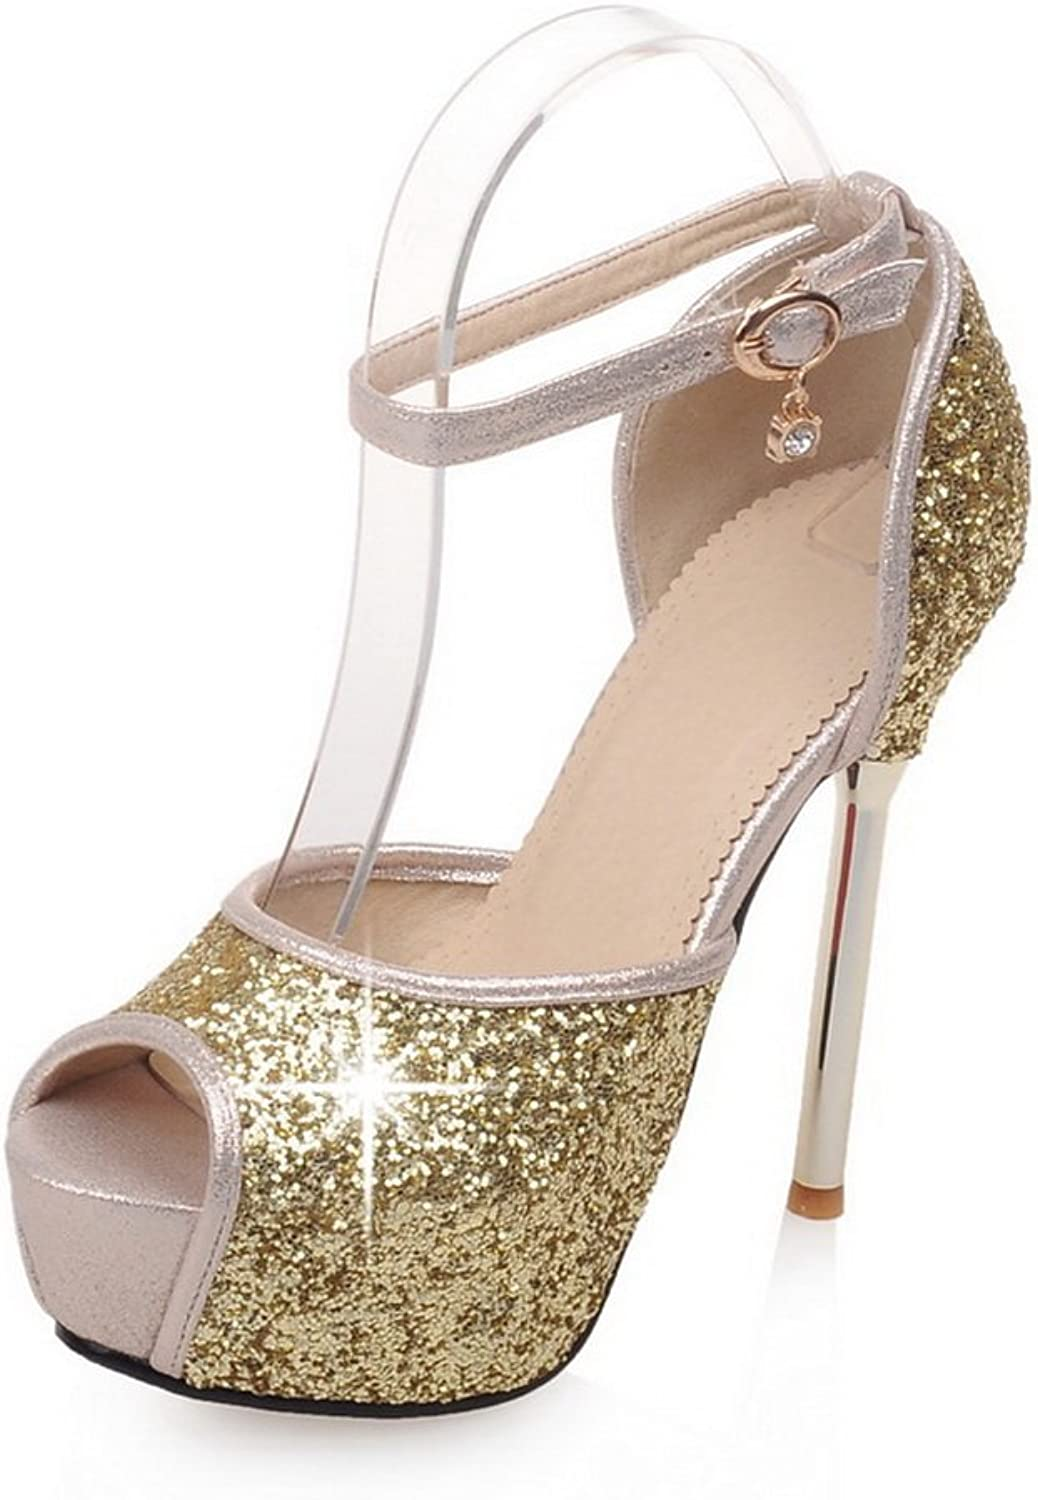 BalaMasa Womens Studded Rhinestones Metal Buckles Ankle Cuff Soft Material Pumps-shoes